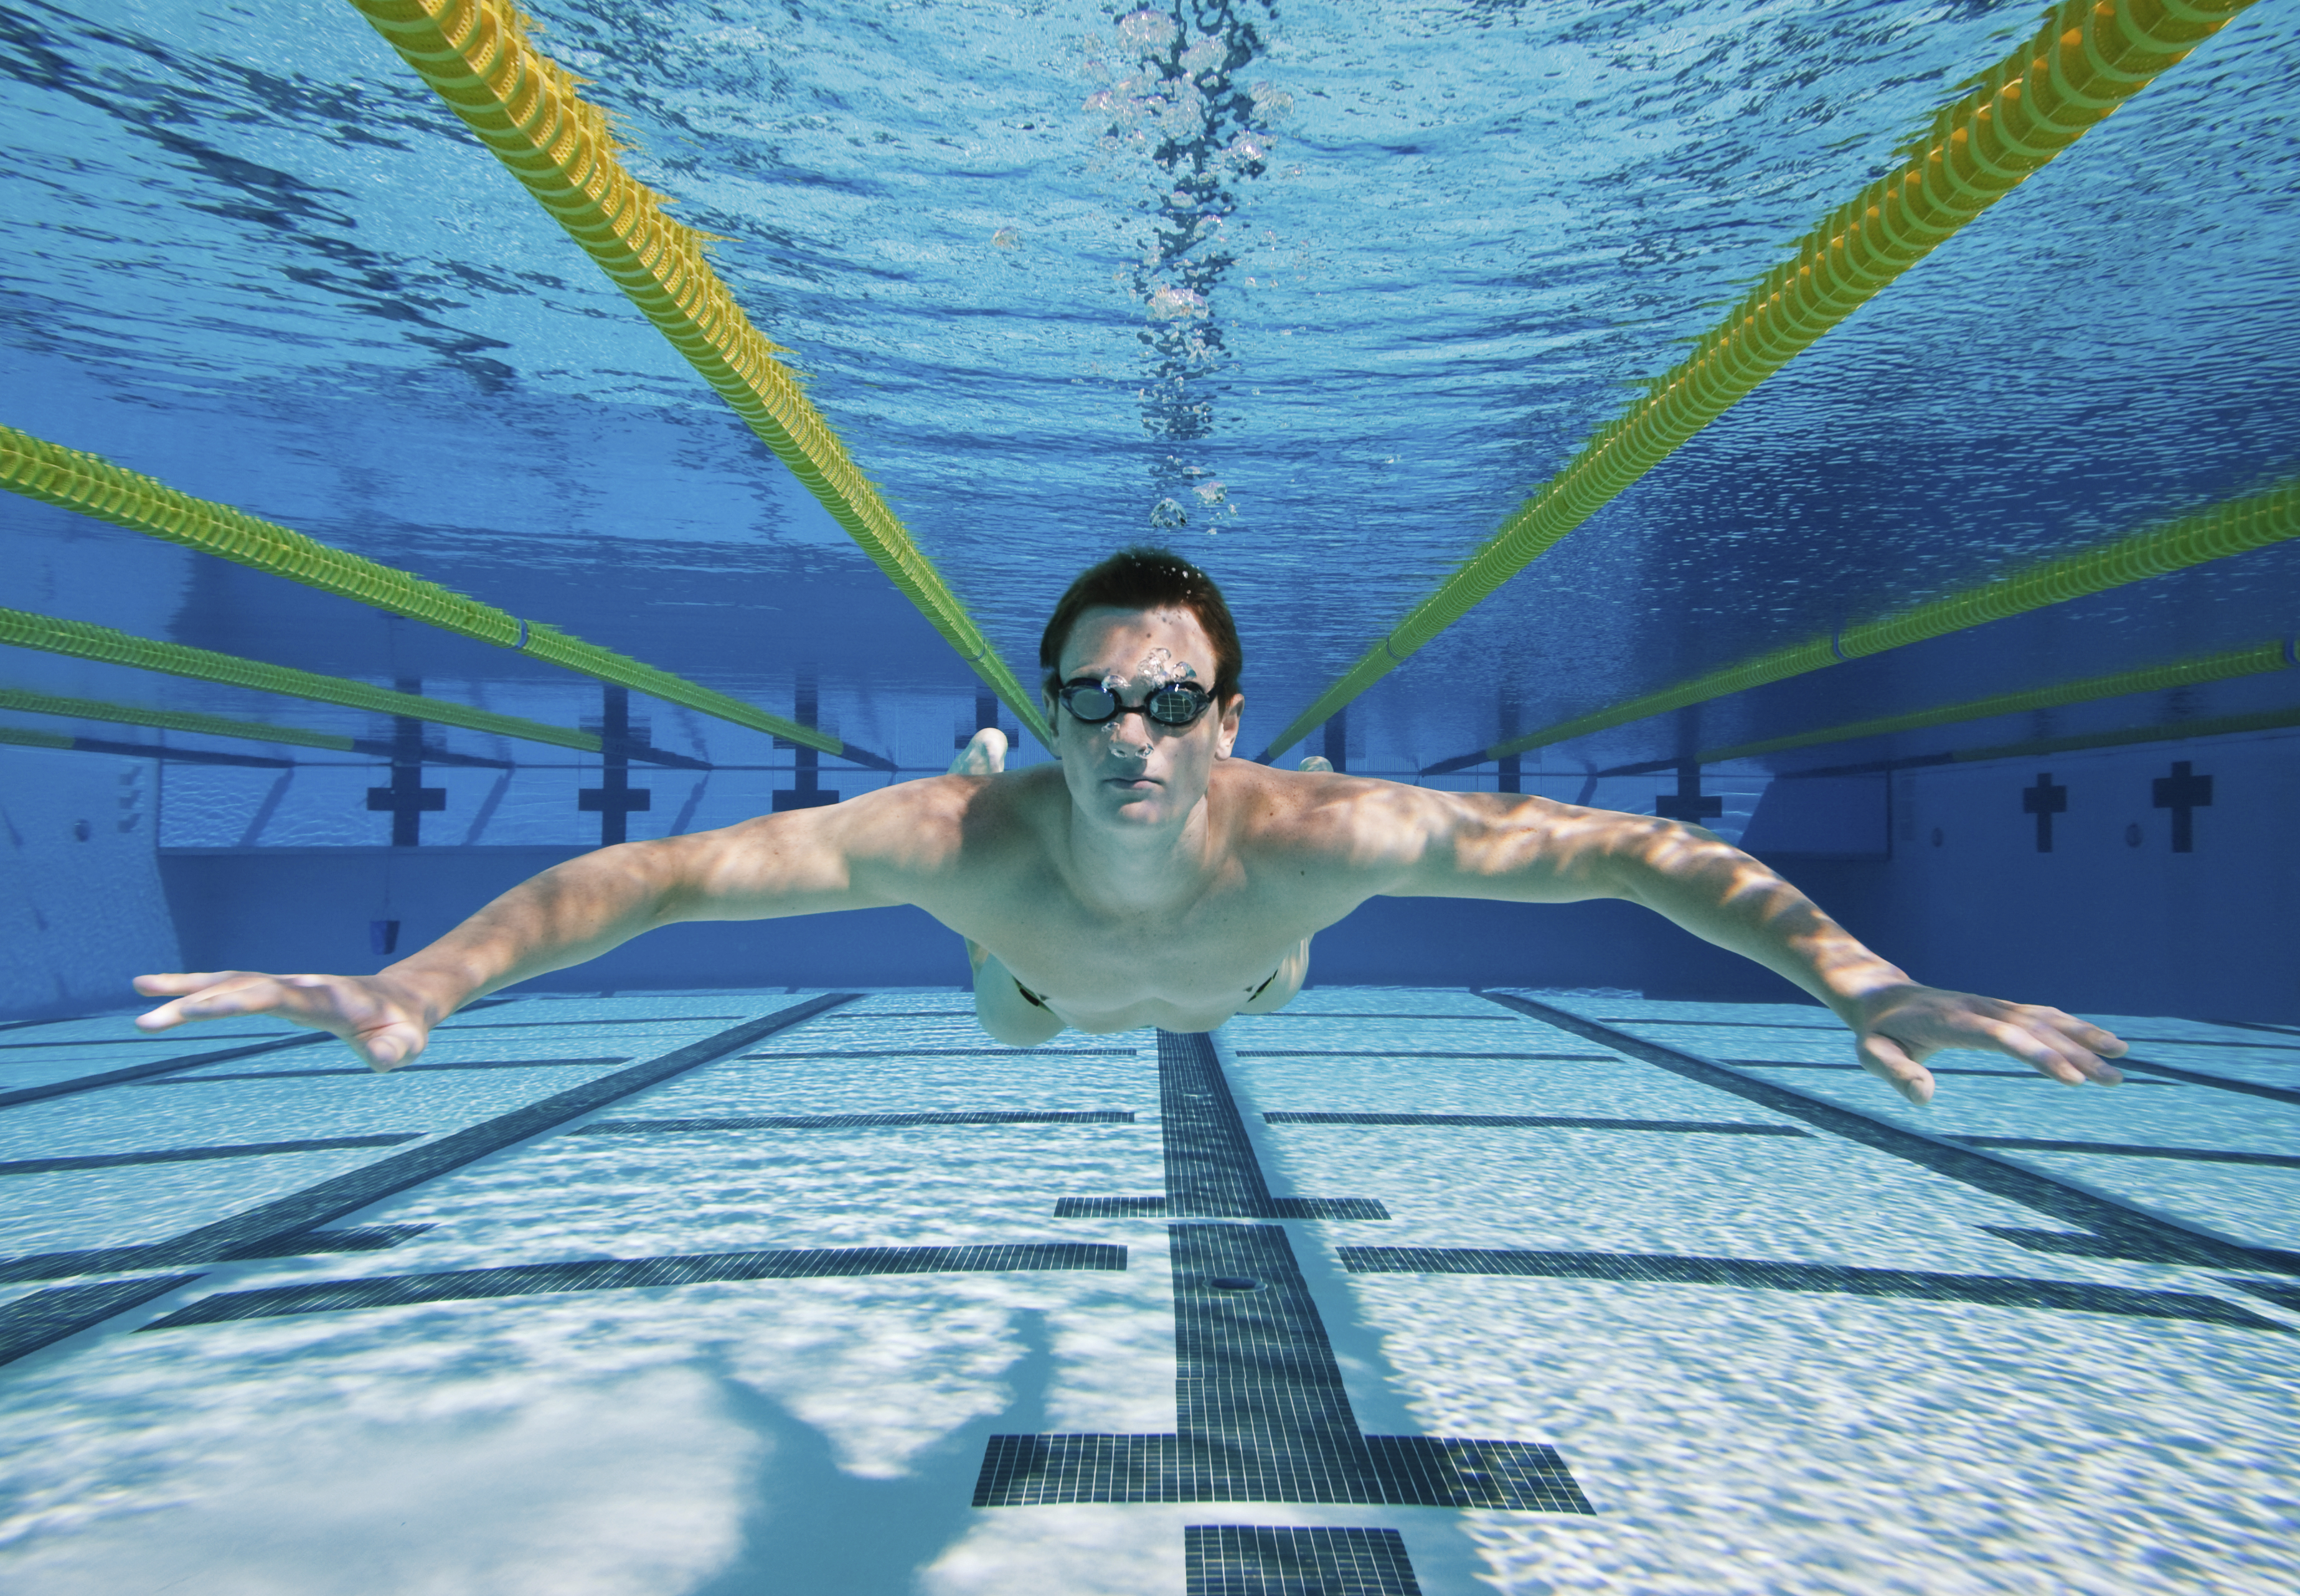 Athletic Swimmer Floating Underwater in Pool